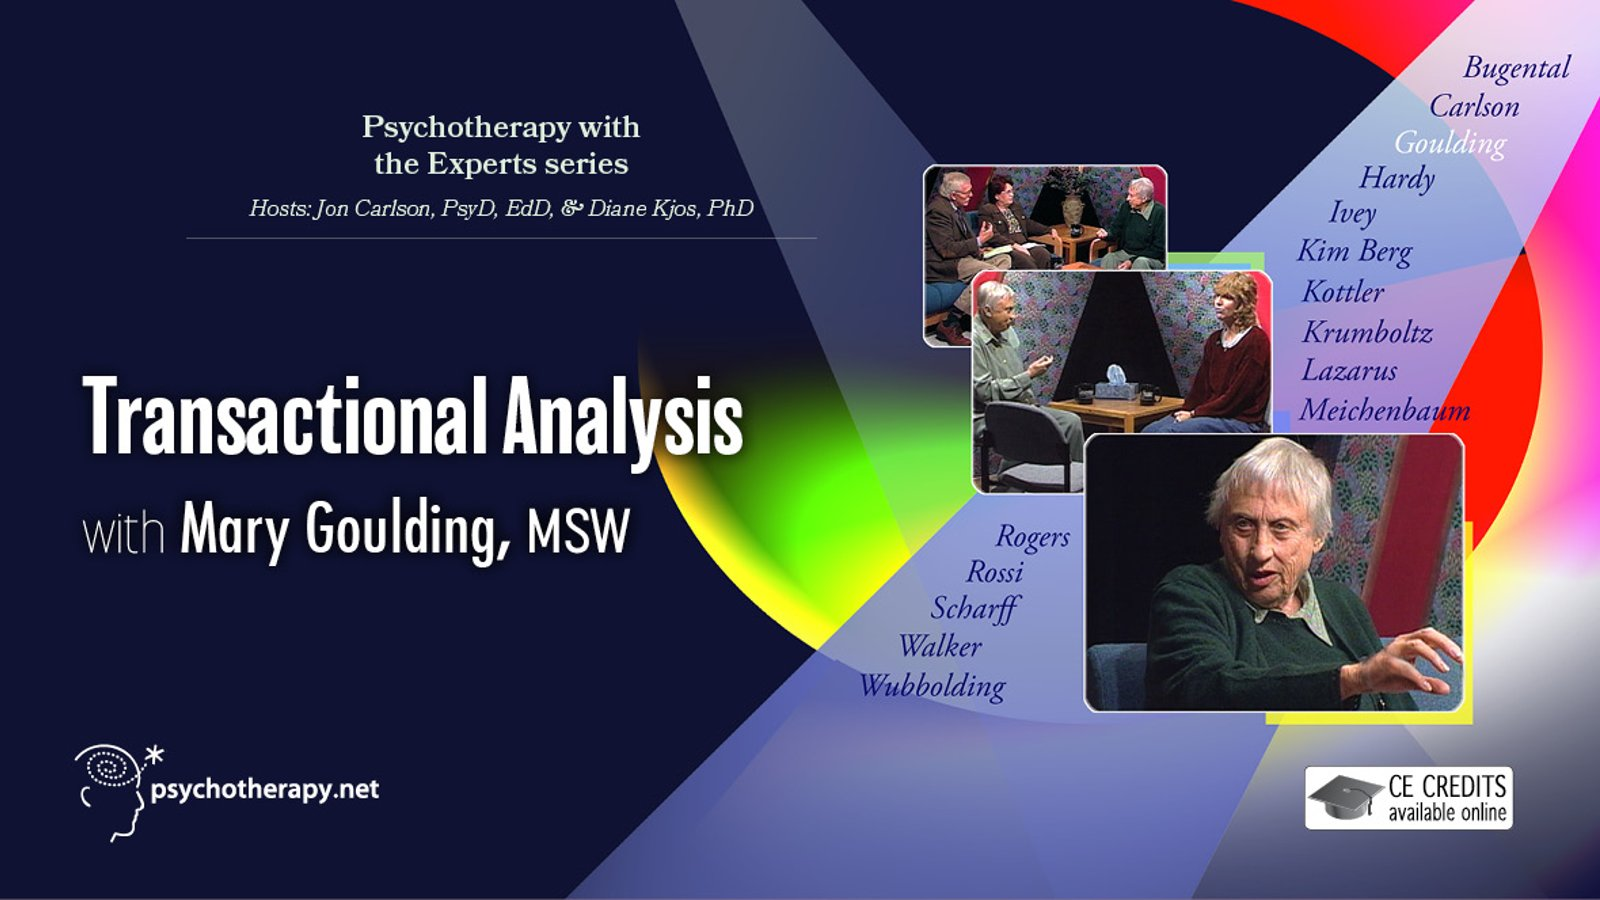 Transactional Analysis - With Mary Goulding